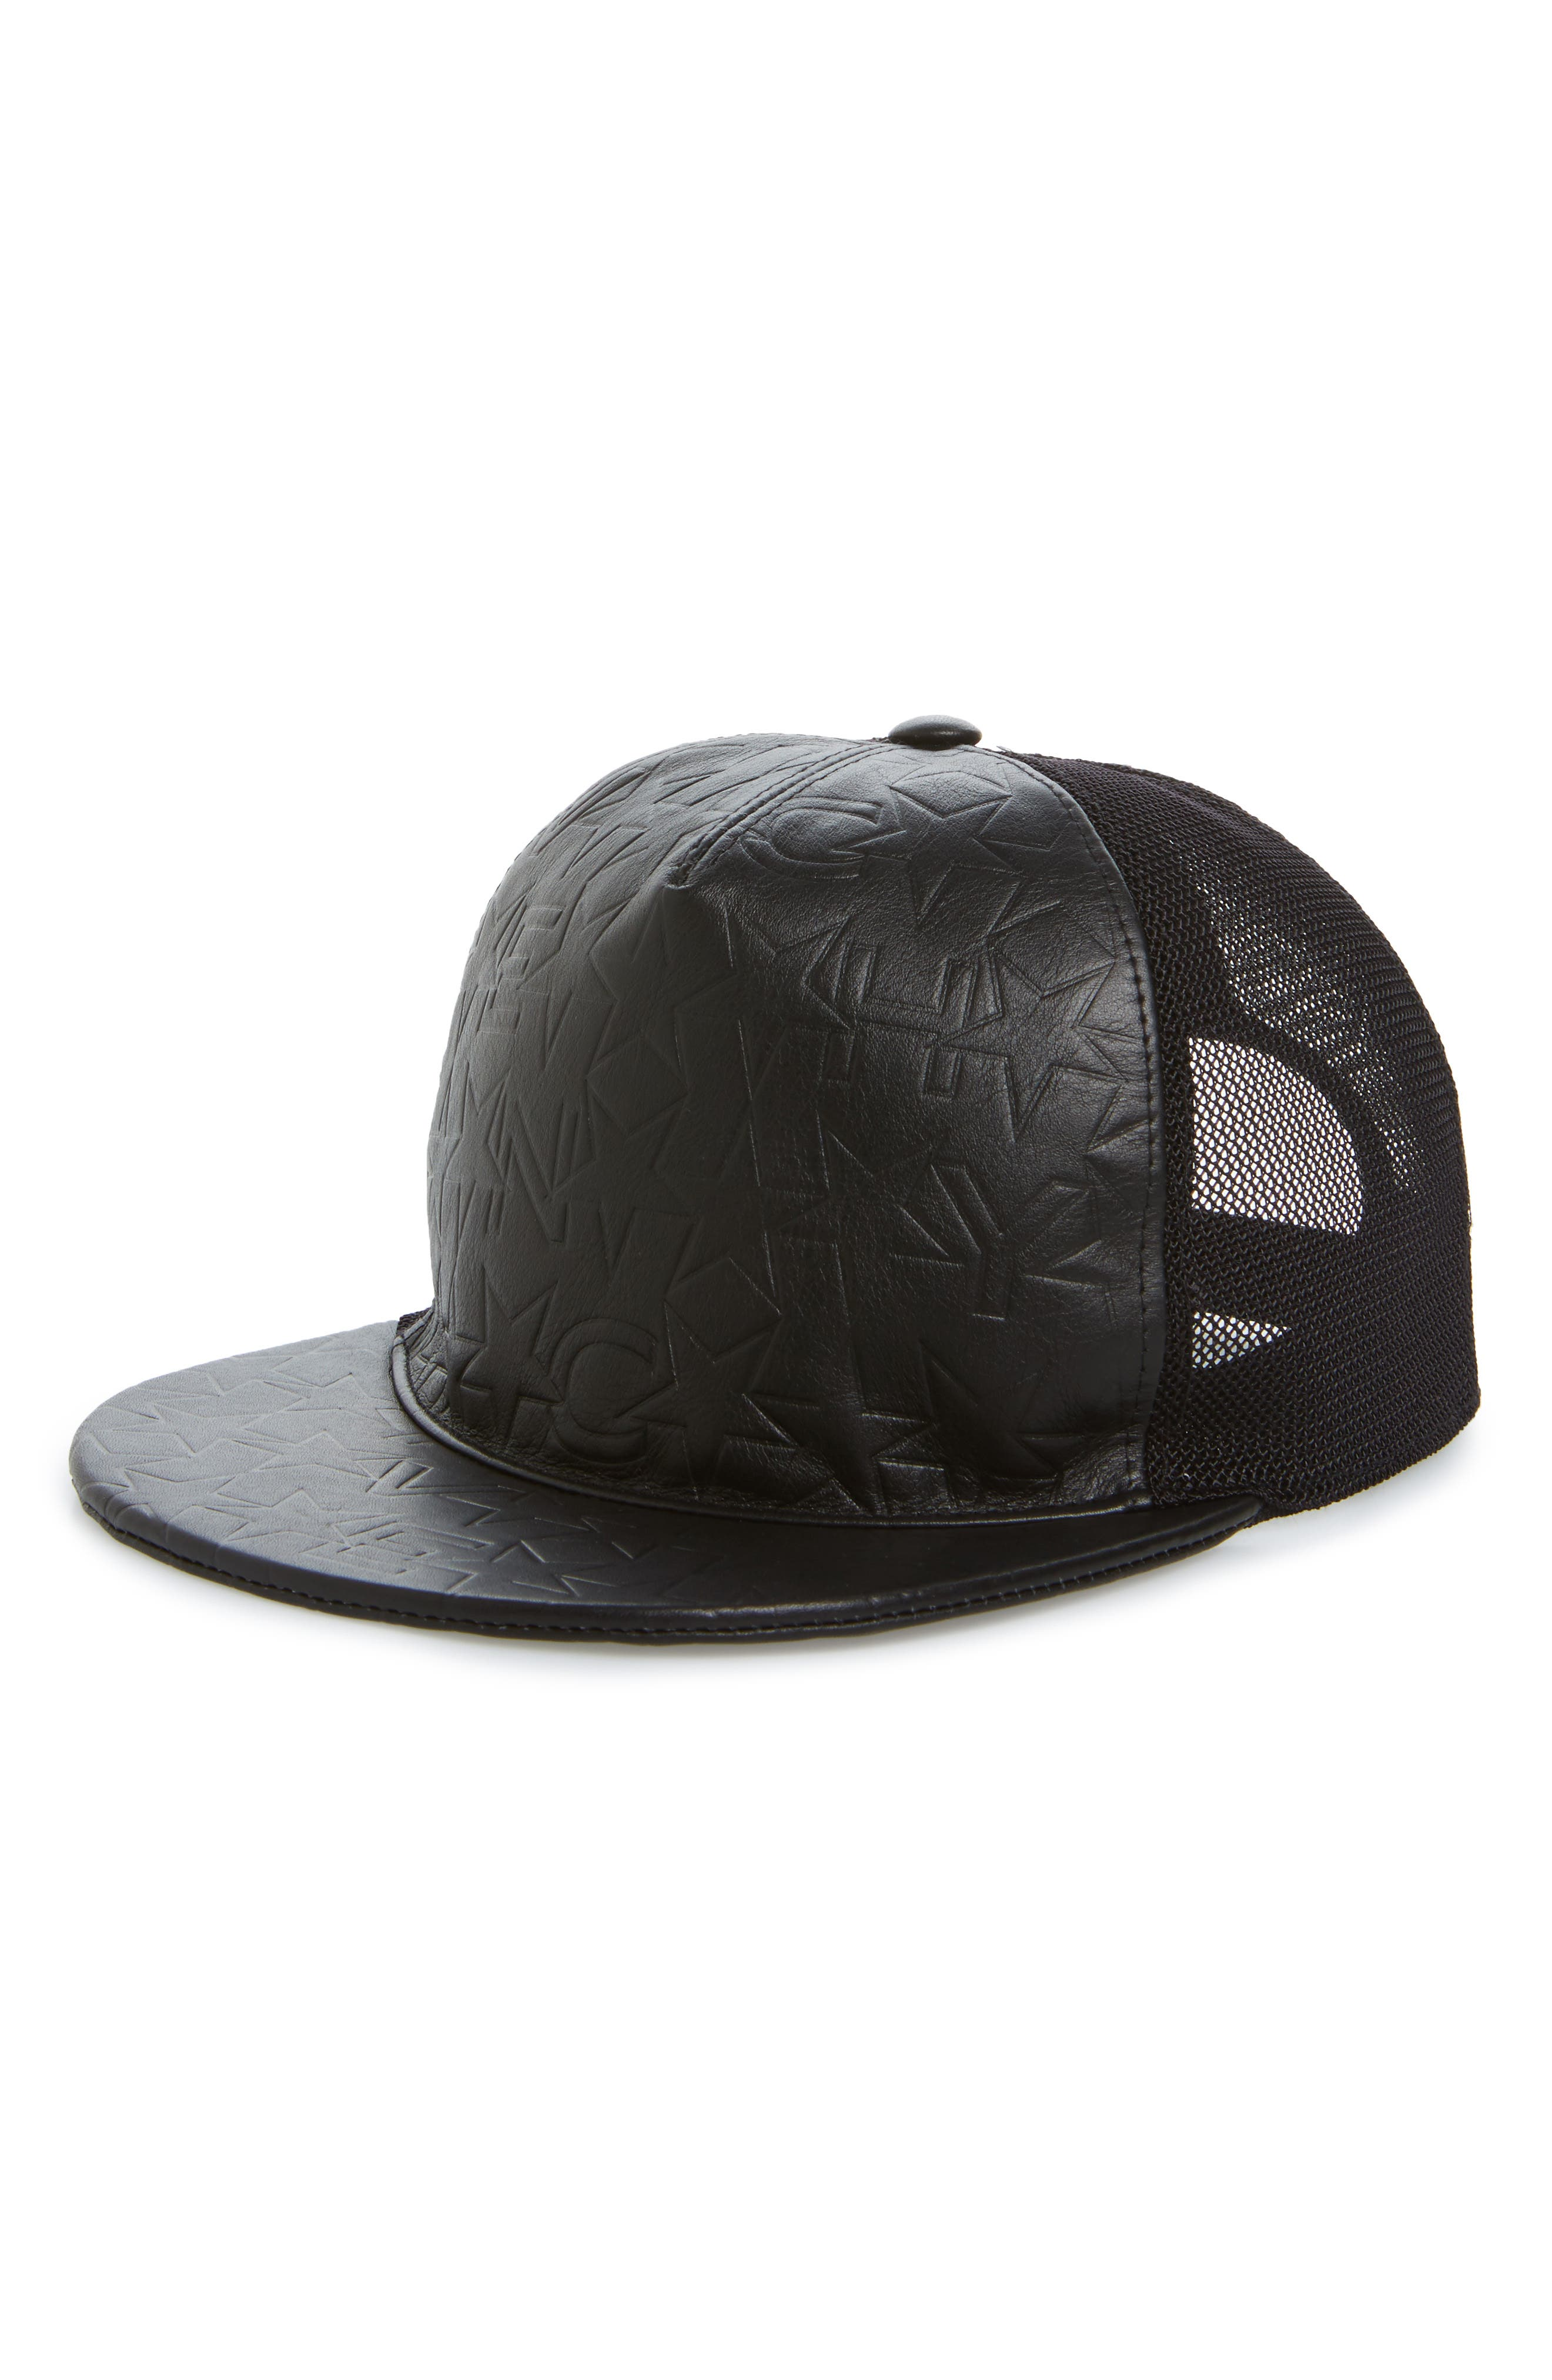 Alternate Image 1 Selected - Givenchy Trucker Hat